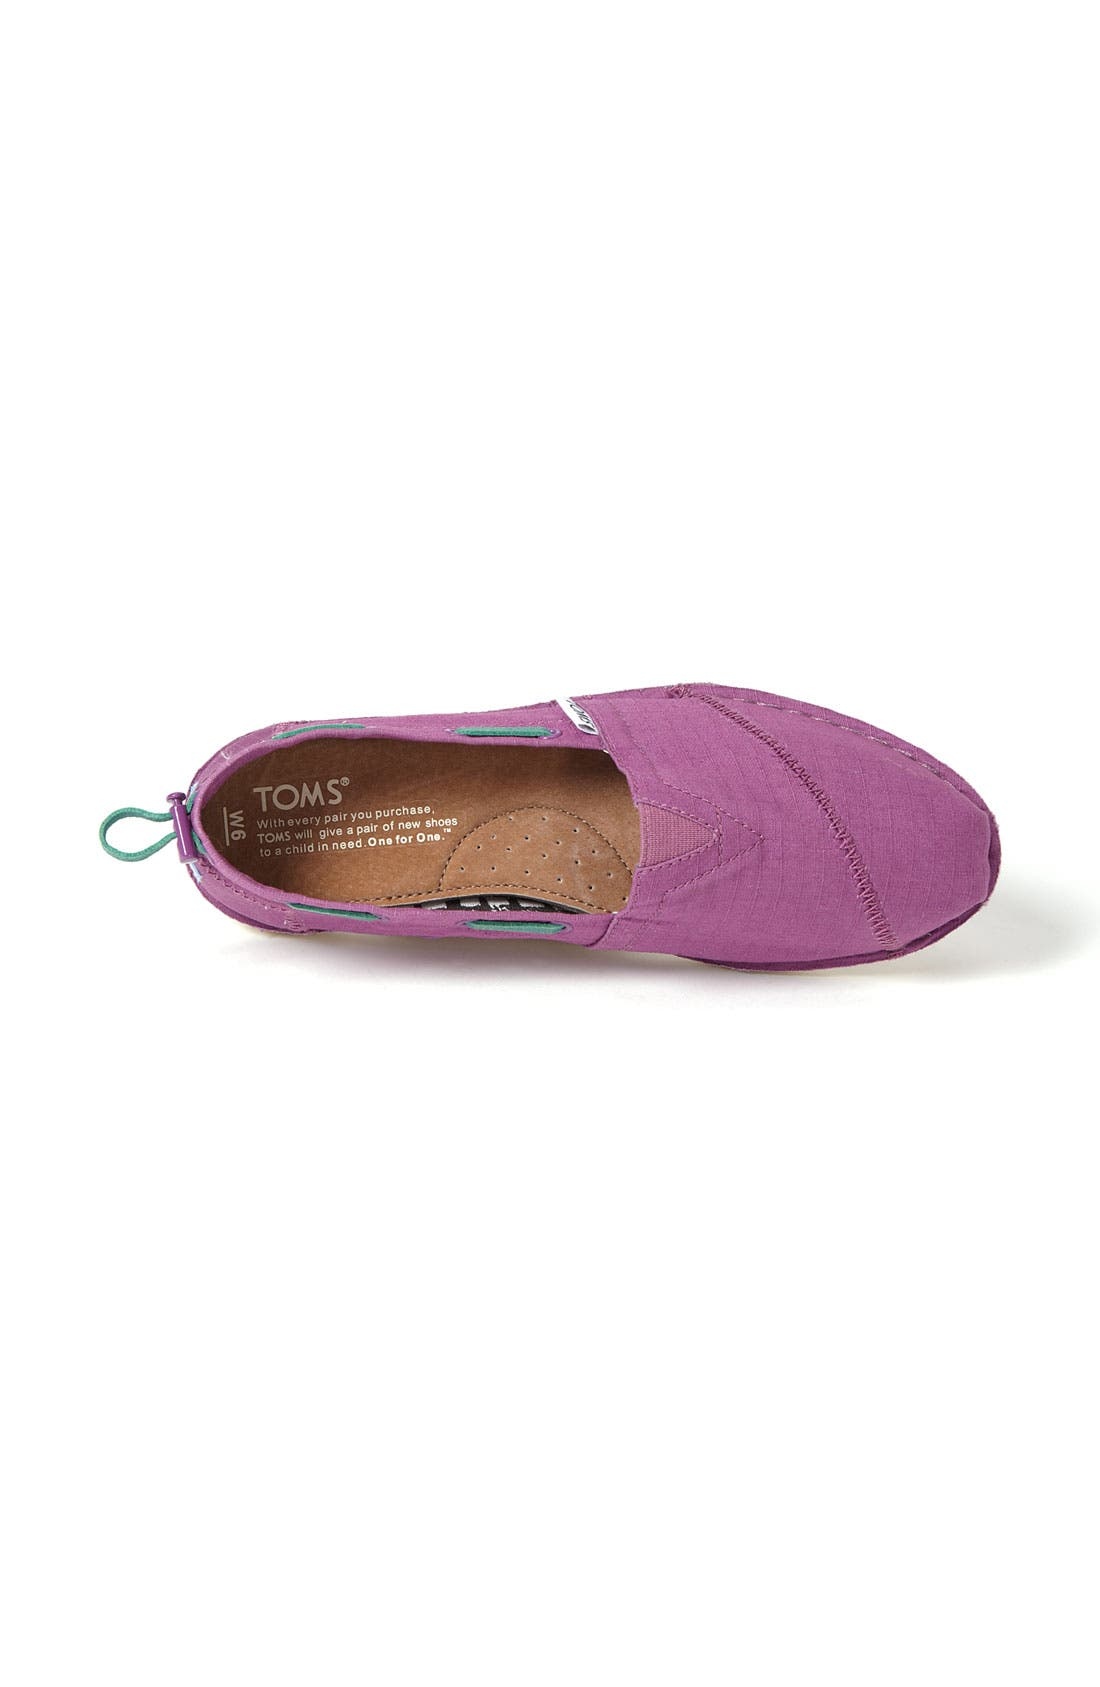 Alternate Image 3  - TOMS 'Bimini' Slip-On (Women)